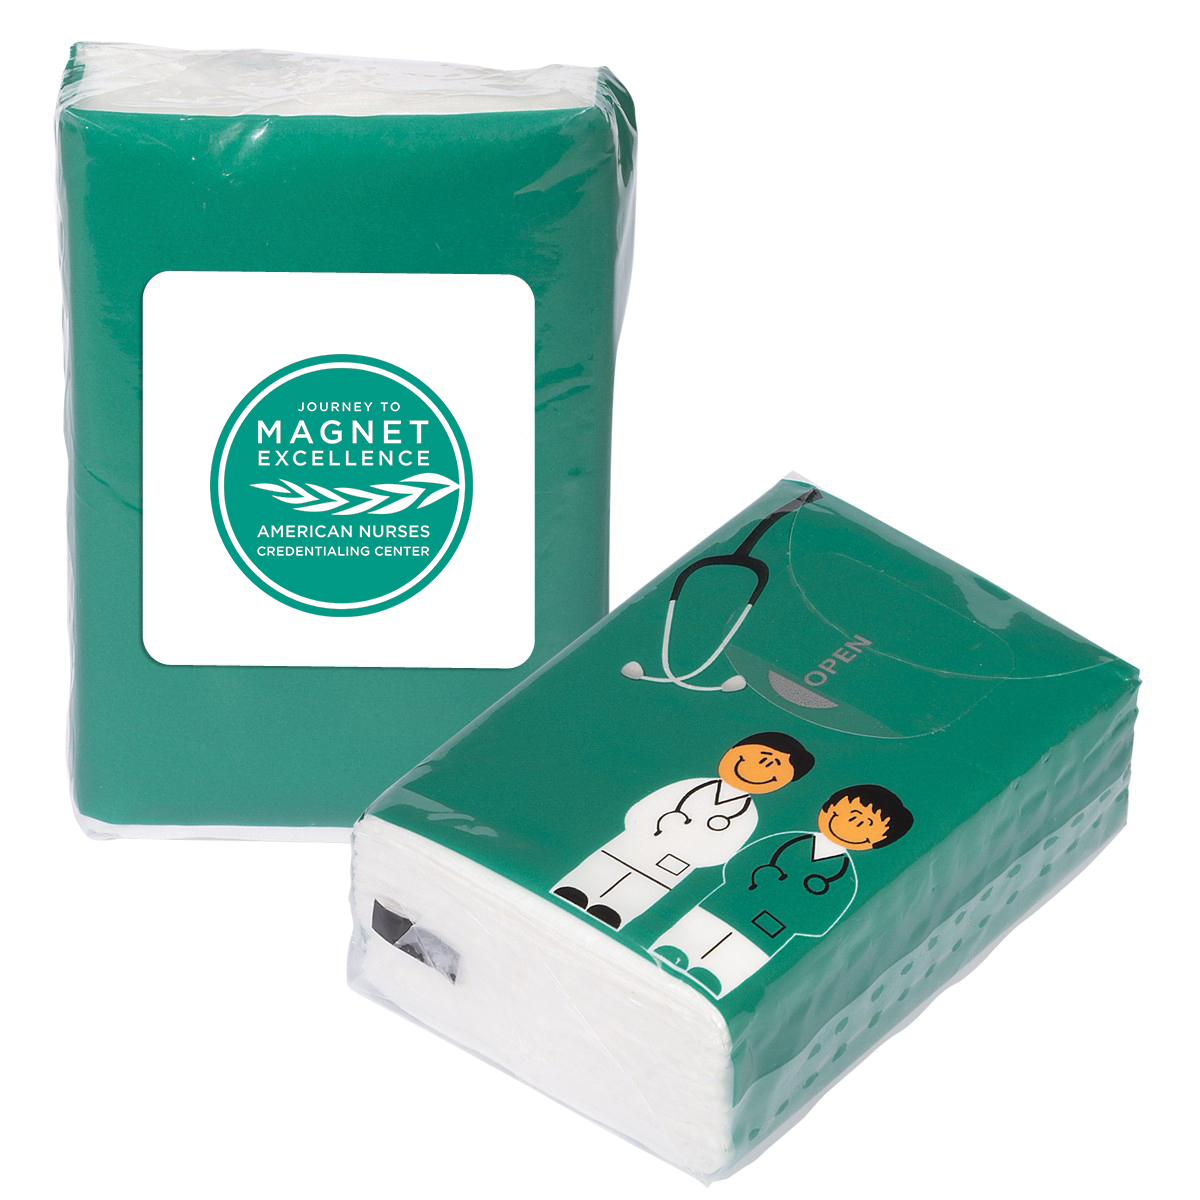 Journey to Magnet Tissue Packet